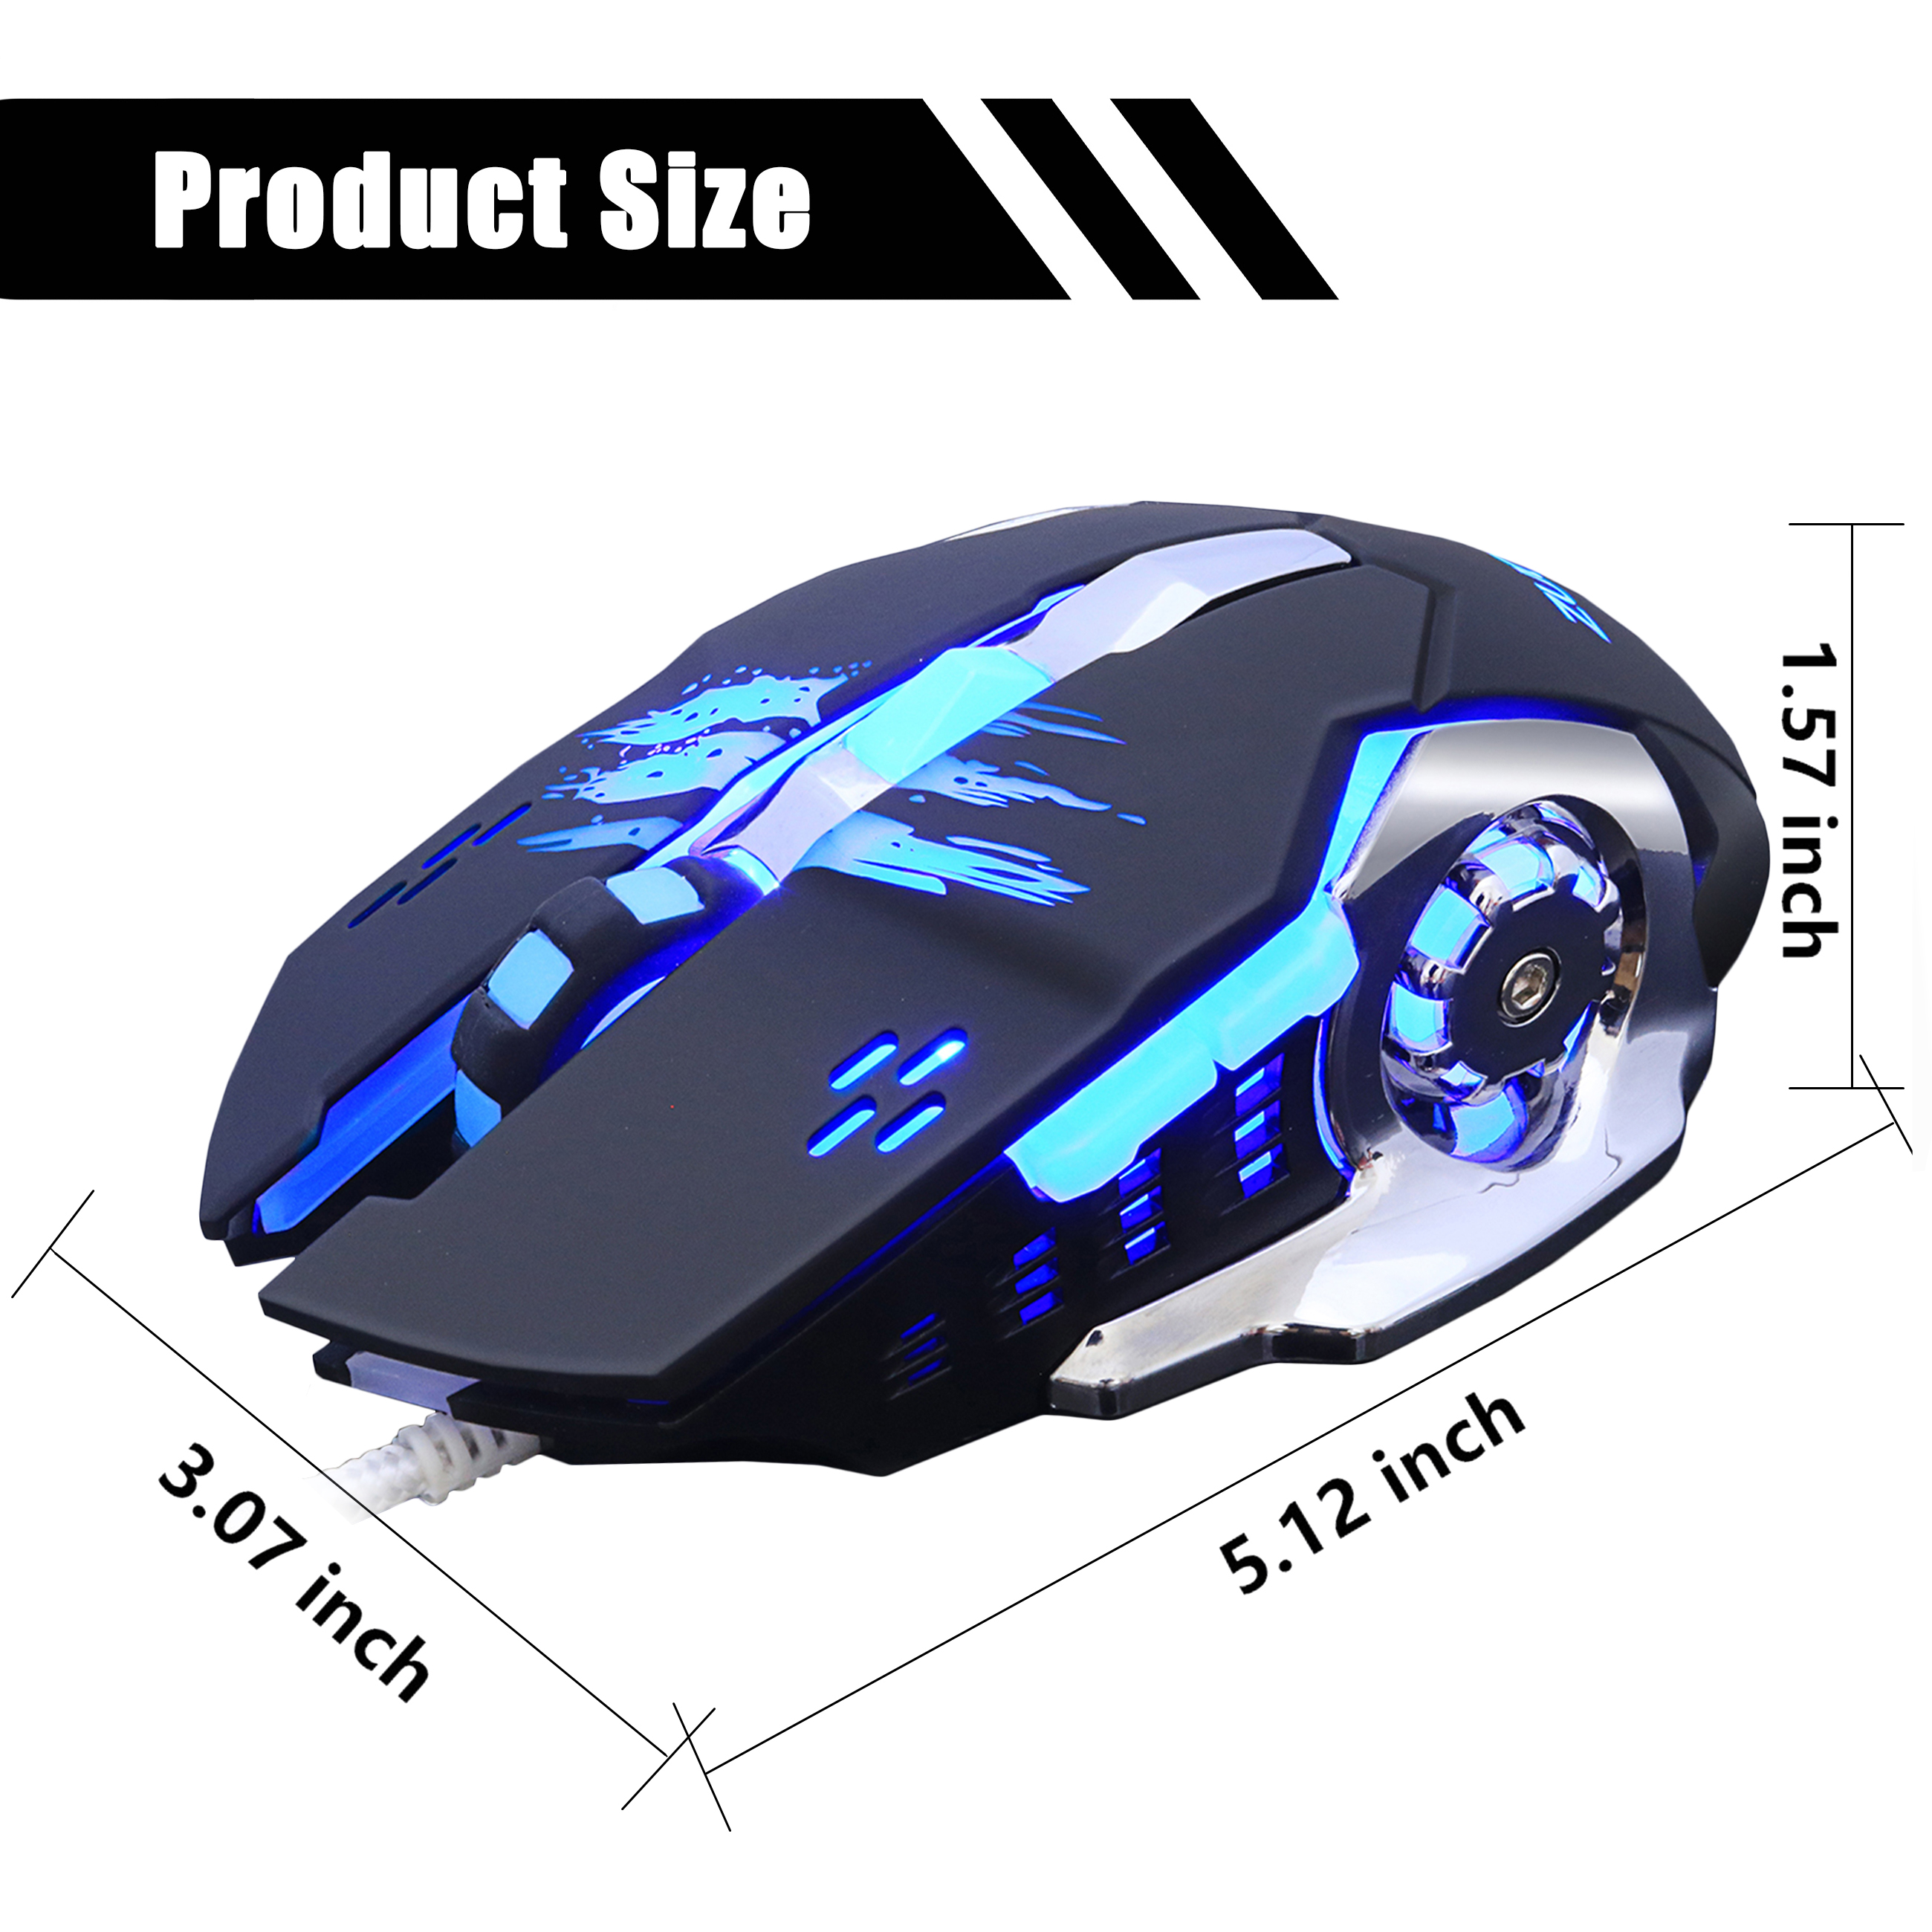 ZUOYA Gaming Mouse DPI Adjustable Wired Mouse USB Optical LED Computer Mice for Laptop PC Game Professional Gamer